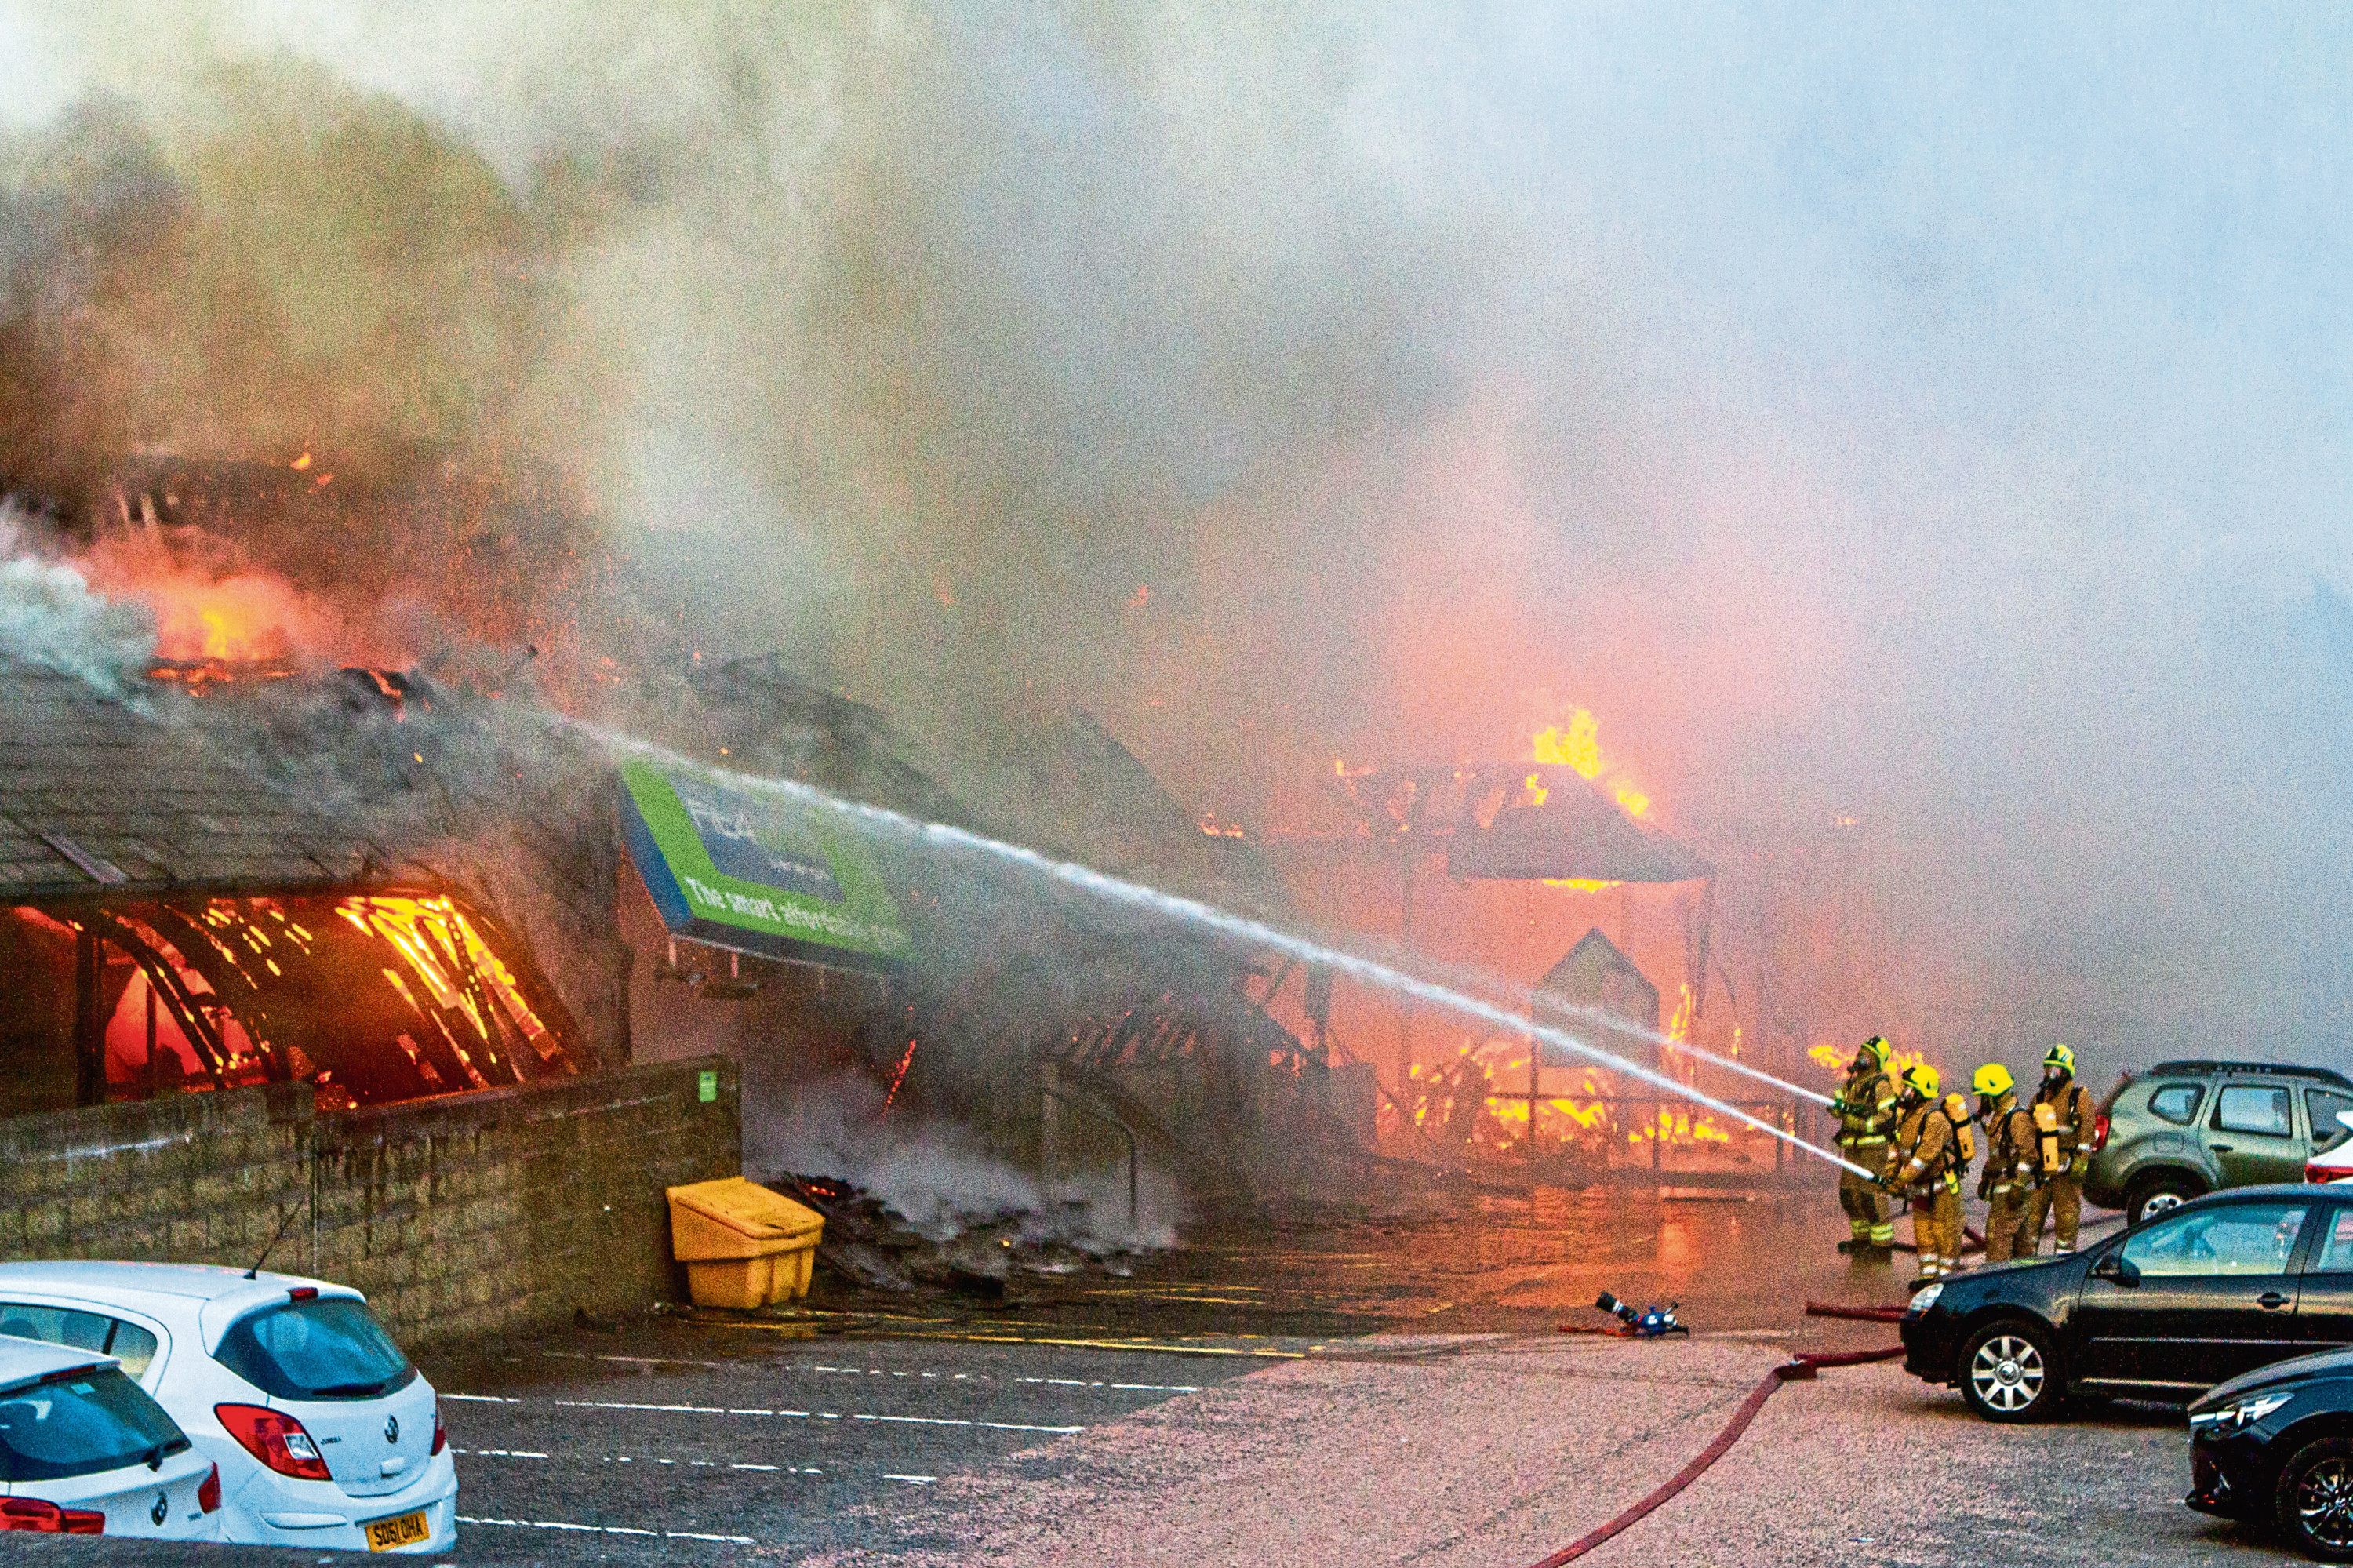 Courier News, Peter John Meiklem Story, CR0003684 Hilltown Indoor Market and Fit4Less Gym building on fire - emergency crews at the scene.  Picture shows fire crews on the scene. Hilltown Indoor Market (and Fit4Less Gym), Main Street, Dundee. Wednesday 12th September 2018.